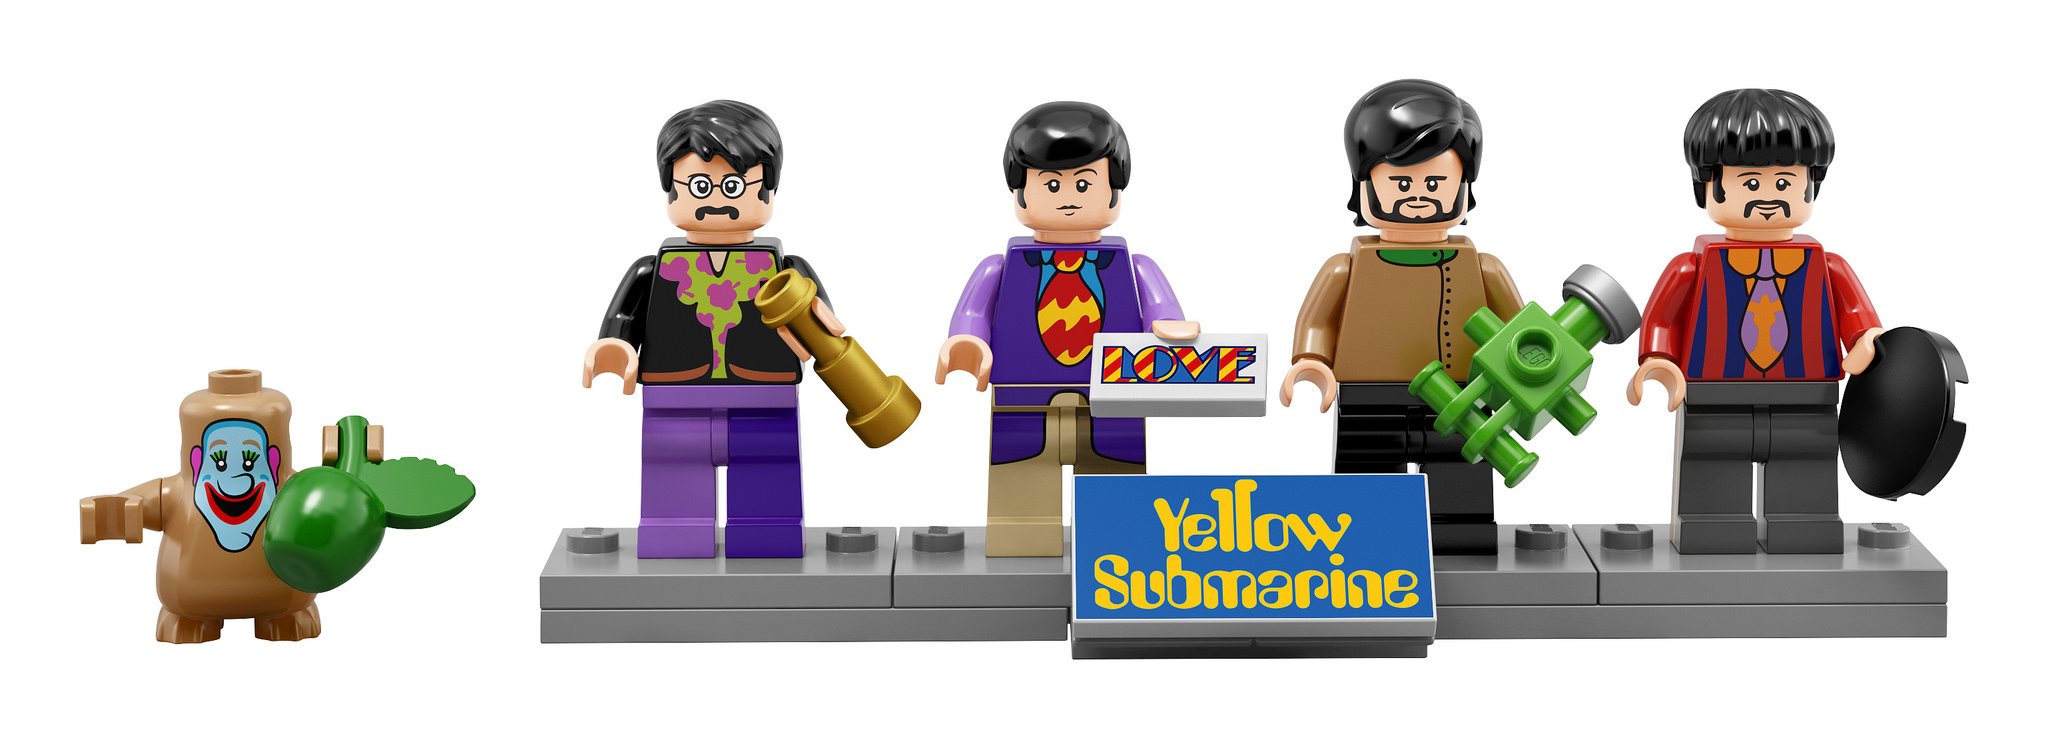 http://images.brickset.com/news/29647758023_4cef2f5337_k.jpg